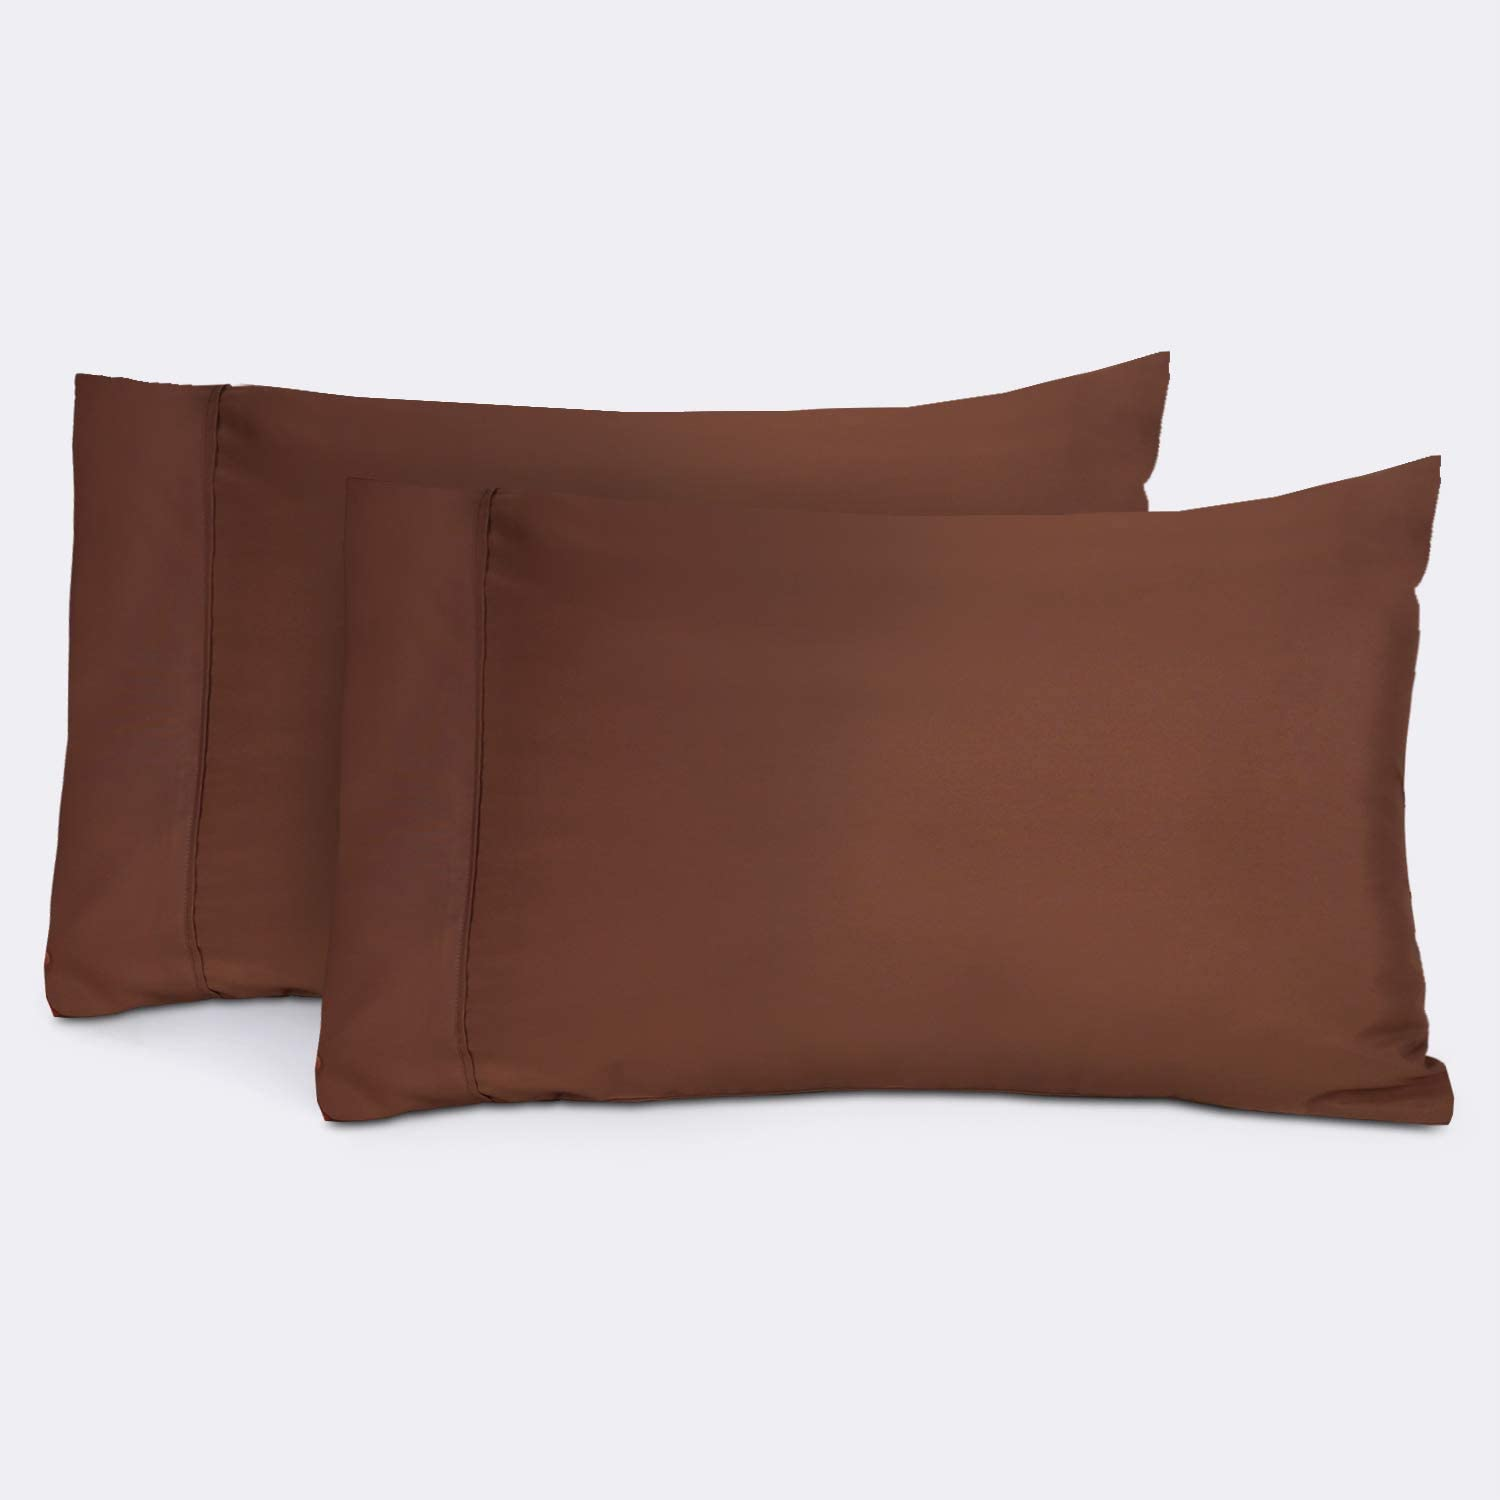 Everspread Pillowcases Set of 2 Que Cocoa – Brown Standard Our Dallas Mall shop most popular